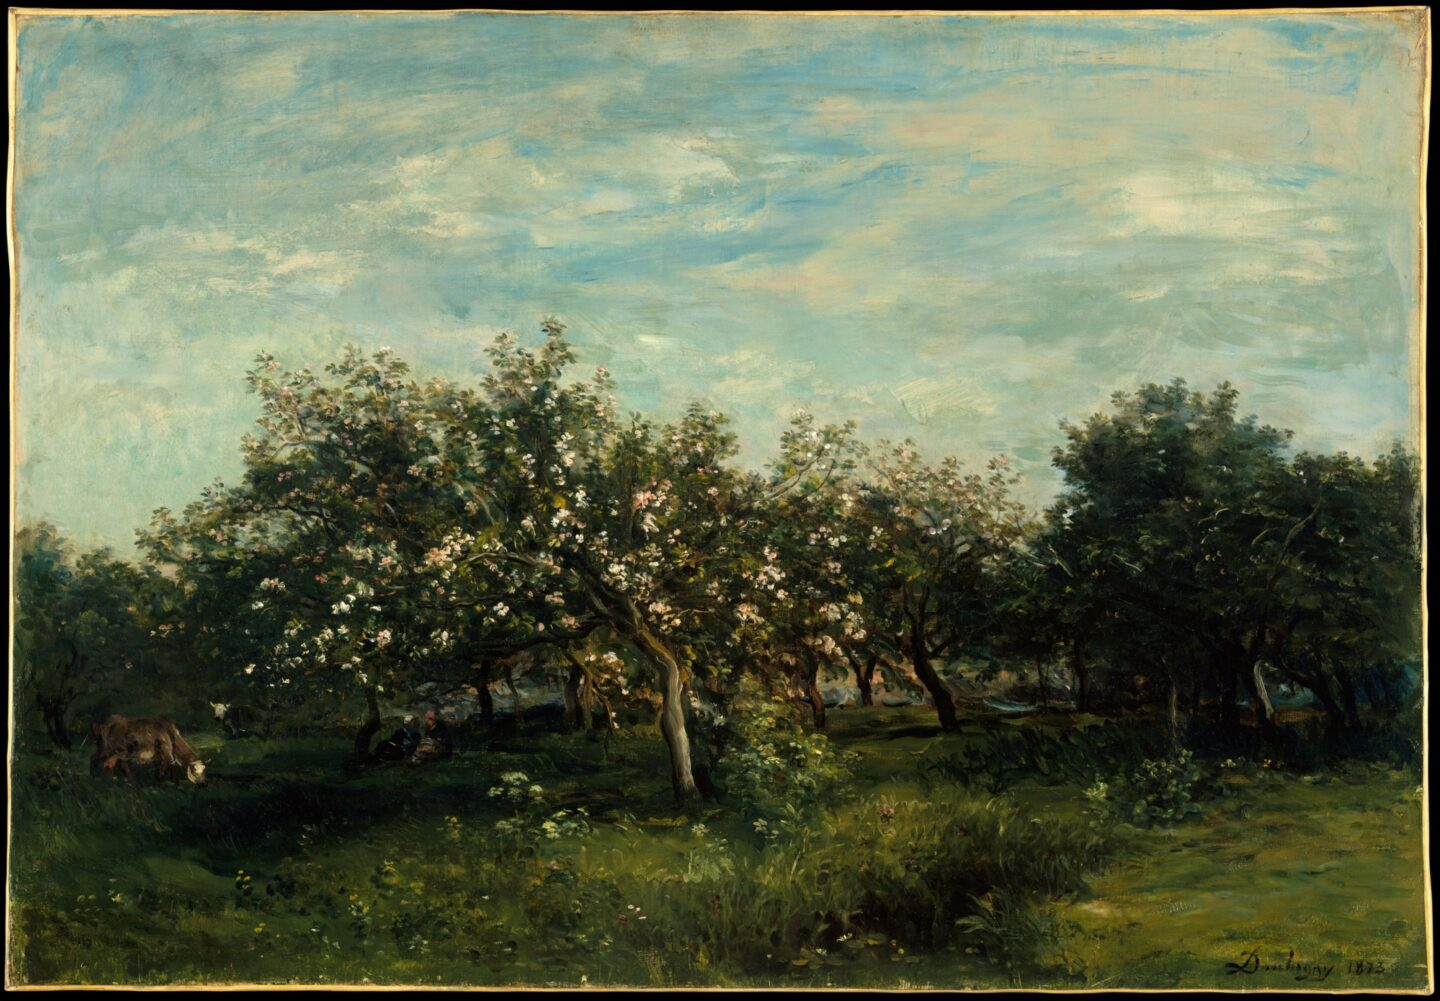 """<p>Image: Charles-François Daubigny, <em>Apple Blossoms</em> (<span class=""""numbers"""">1877</span>) via the <a href=""""https://www.metmuseum.org/art/collection/search/436085?searchField=All&amp;sortBy=Relevance&amp;ft=apple&amp;offset=0&amp;rpp=20&amp;pos=1"""">Metropolitan Museum of&nbsp;Art</a></p>"""